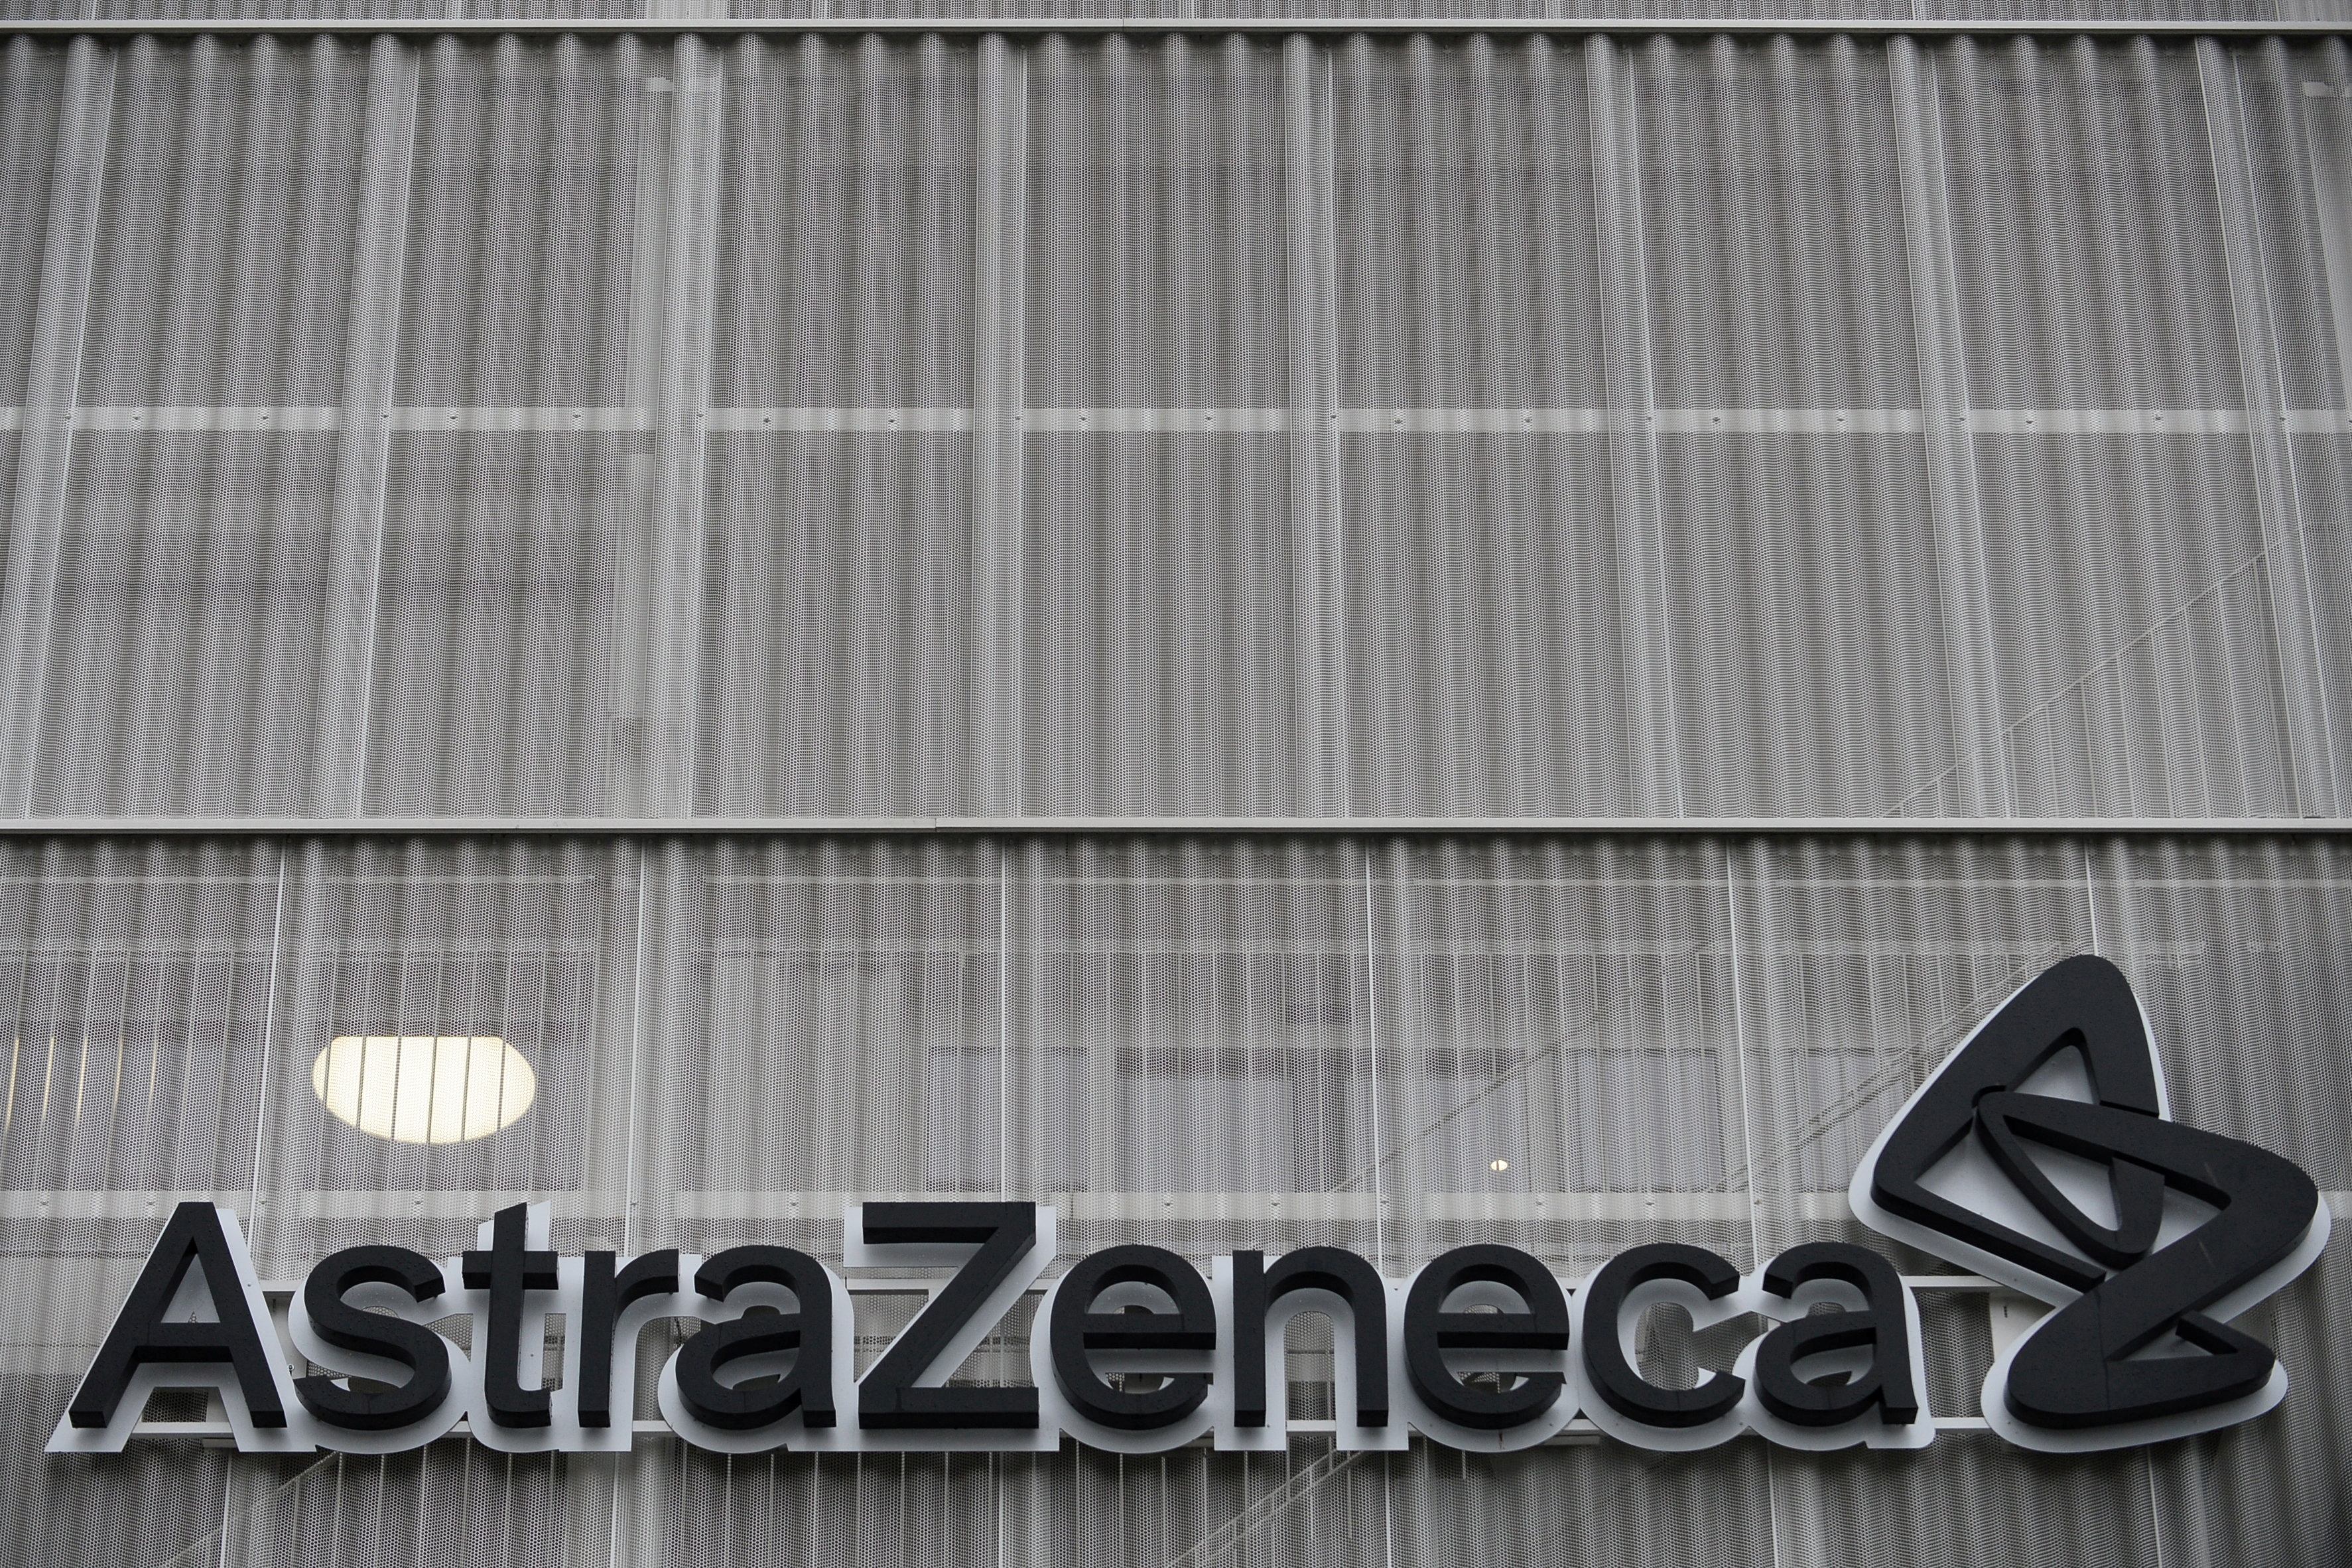 The AstraZeneca logo is pictured outside the AstraZeneca office building in Brussels as part of the coronavirus disease (COVID-19) vaccination campaign, Belgium, January 28, 2021. REUTERS/Johanna Geron